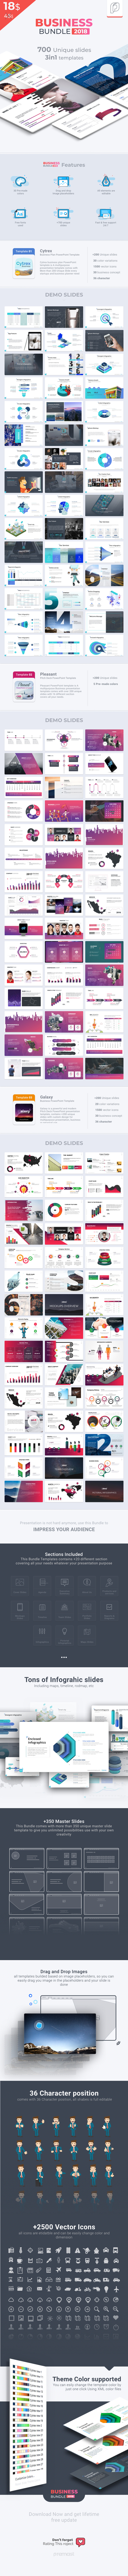 2018 Powerpoint Business Bundle 3 in 1 Template